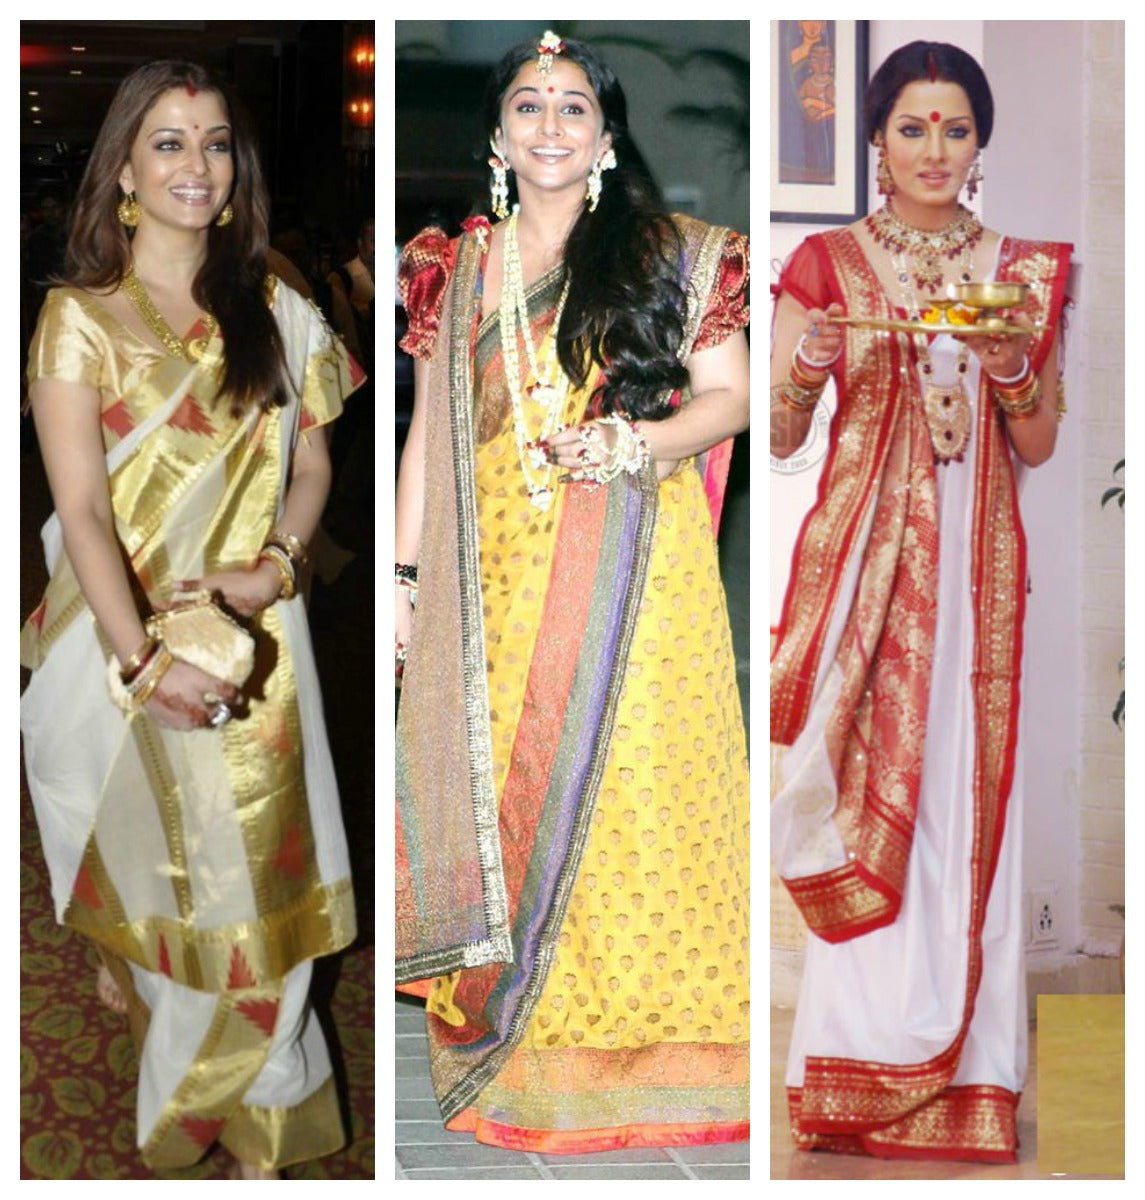 New Fashion Trends Of Draping A Saree